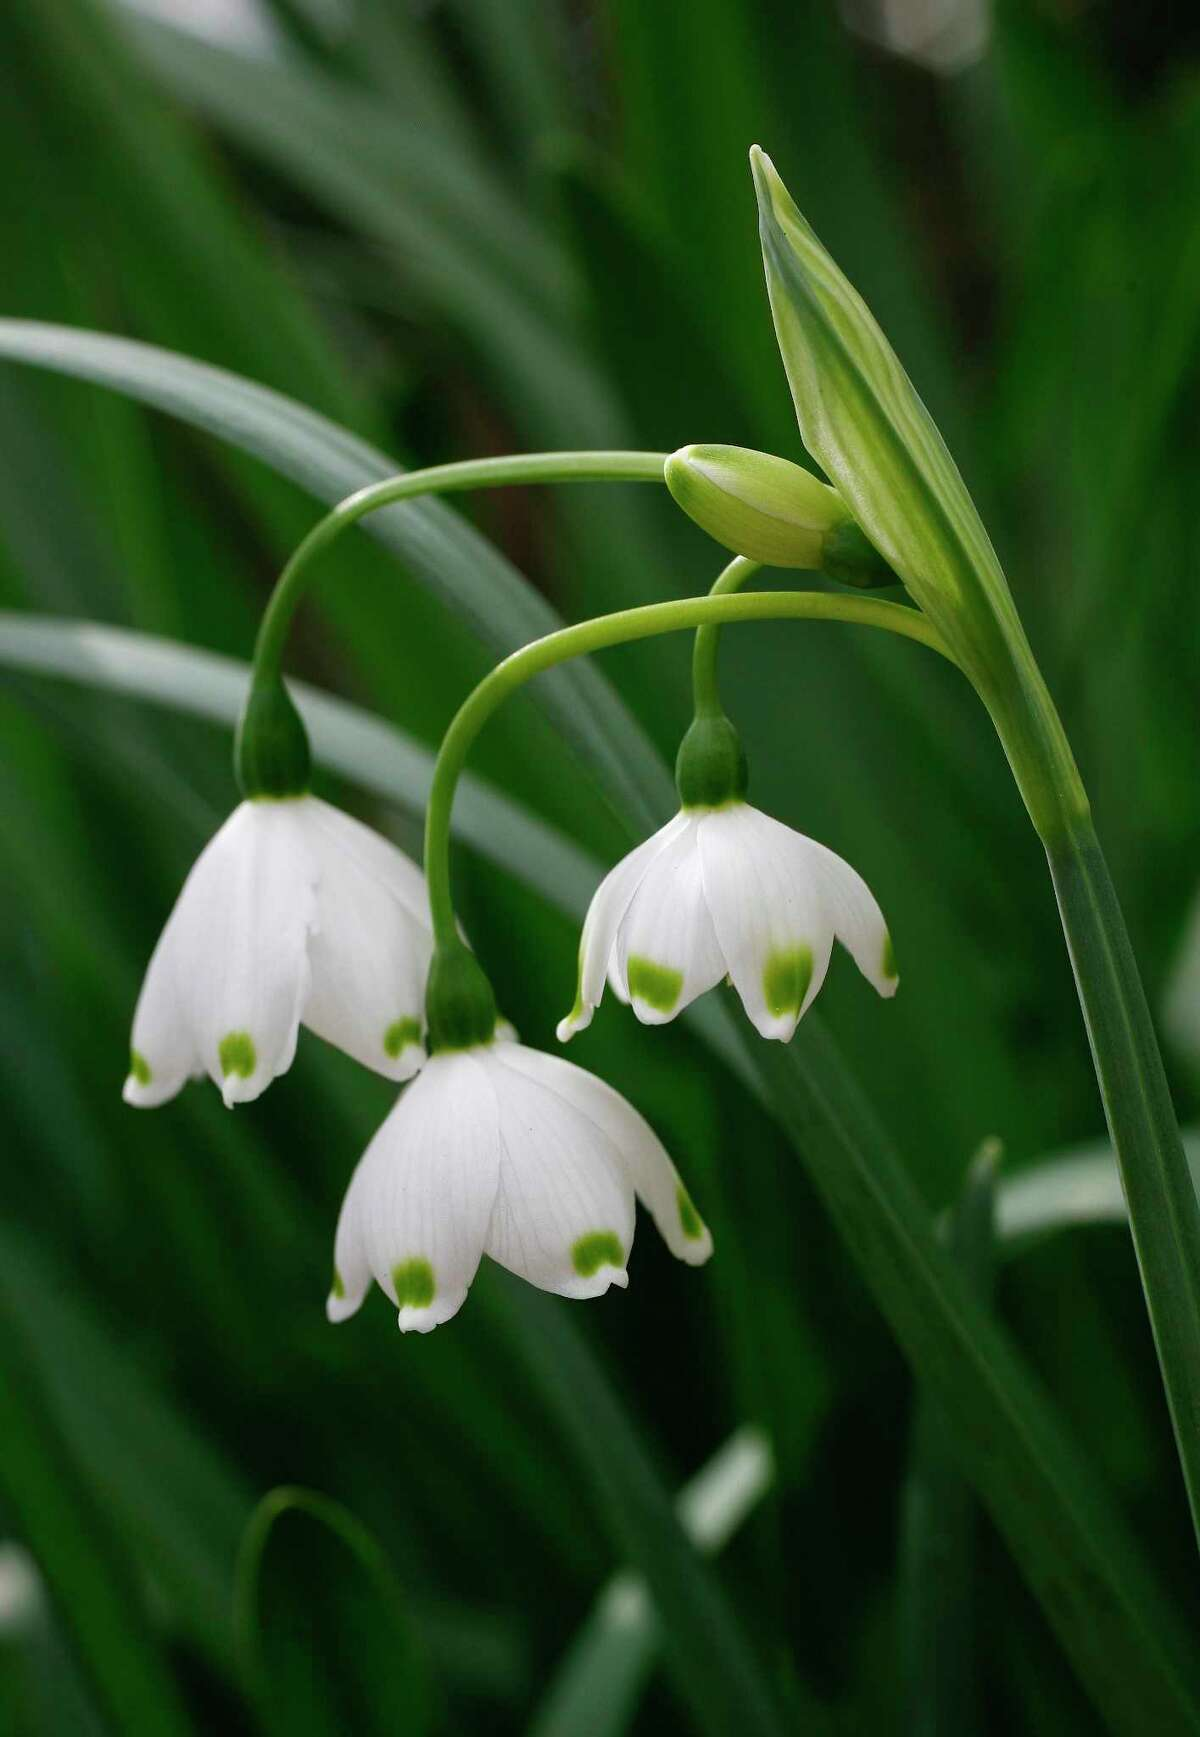 Leucojum aestevum, or snowflake, is an heirloom bulb that will be for sale at the Garden Club of Houston's Plant and Bulb Mart.